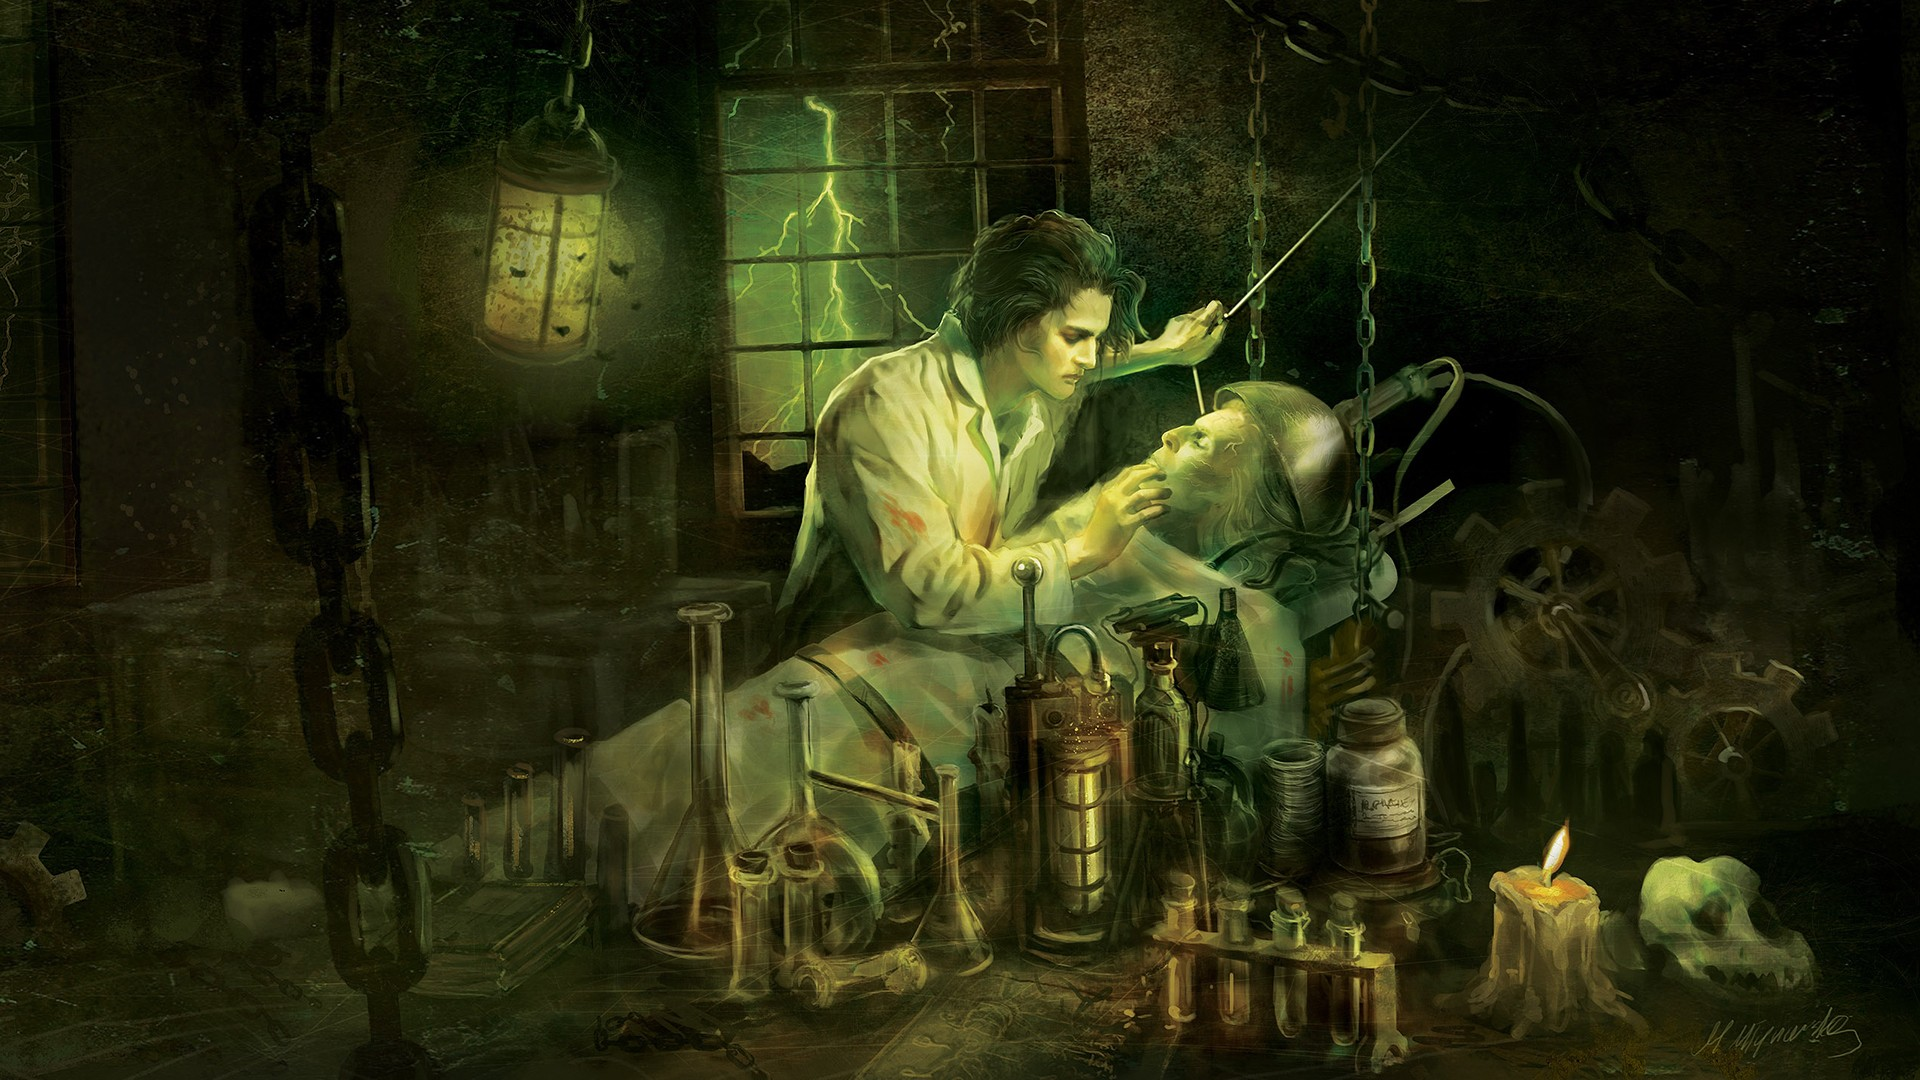 frankenstein lab essay Frankenstein essay: frankenstein, by mary shelley, is arguably one of the most controversial novels of the 19th century it discusses the concept of science verses human conscience in a.